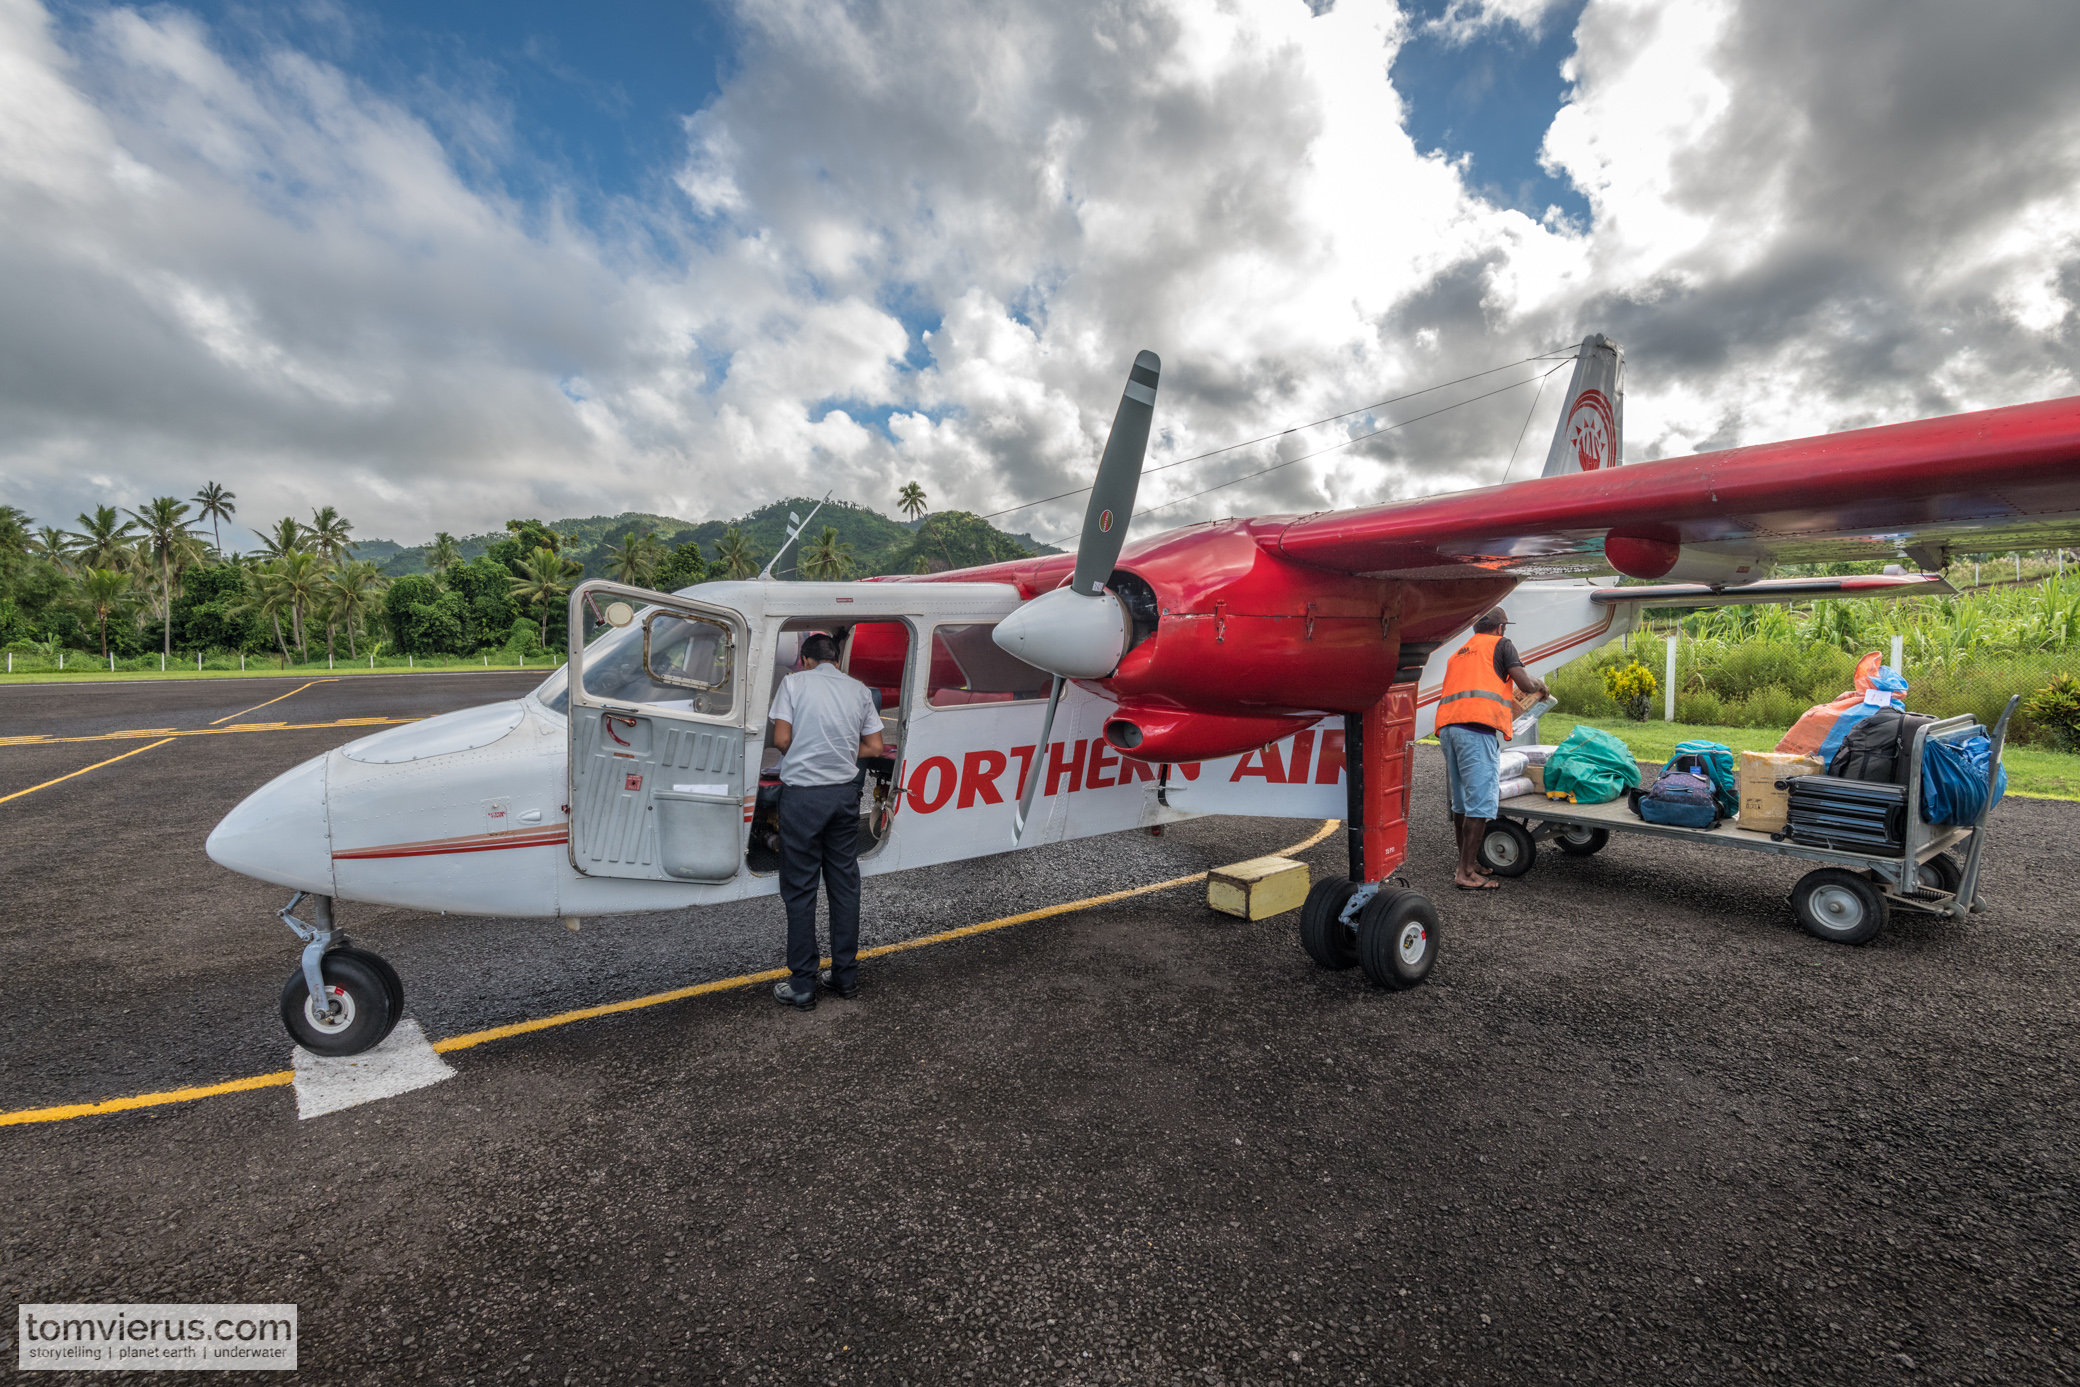 PLane, Ovalau, Suva, Expedition,